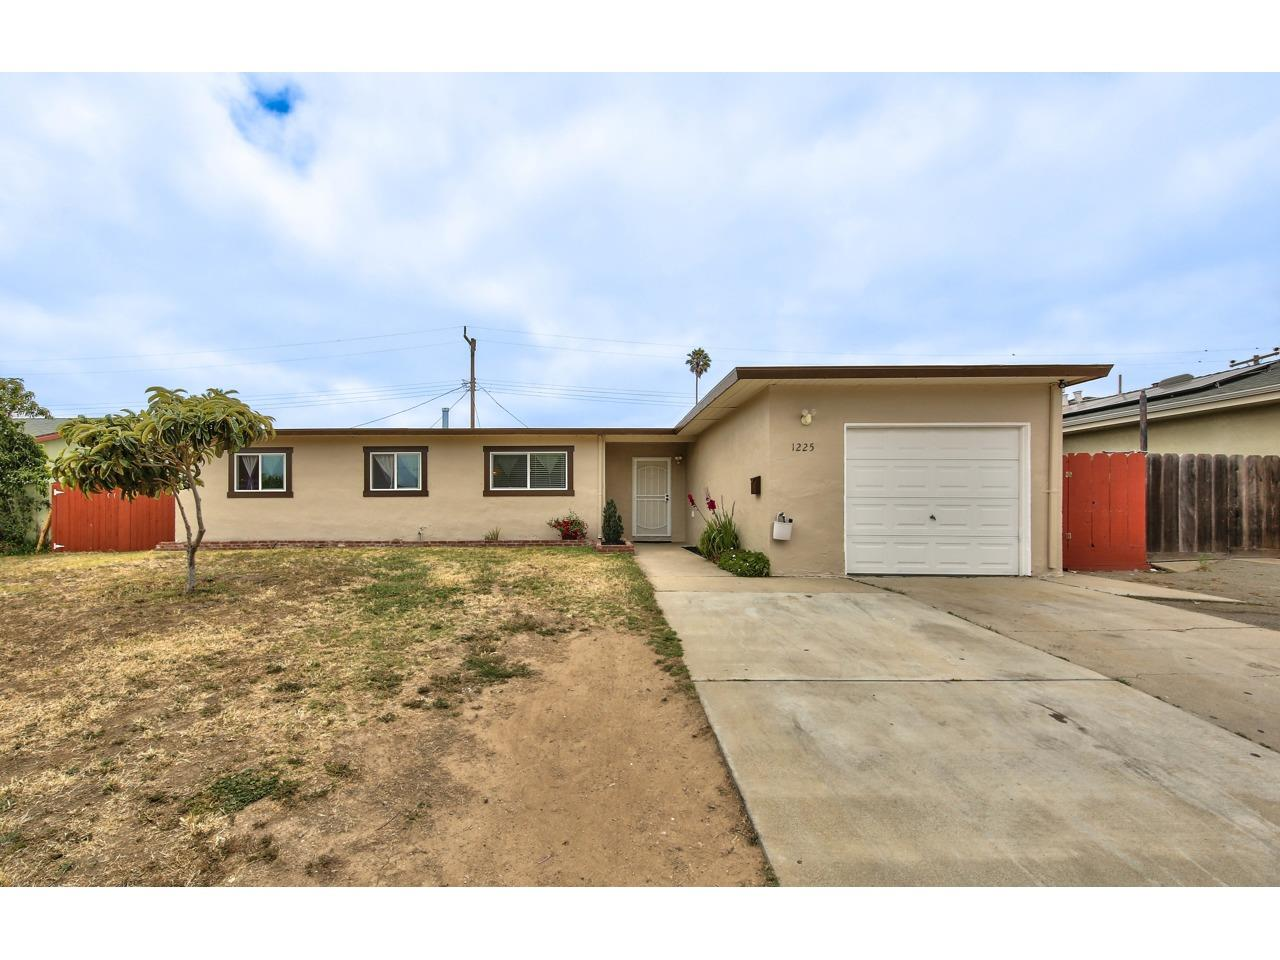 Detail Gallery Image 1 of 18 For 1225 Ramona Ave, Salinas, CA 93906 - 4 Beds | 2 Baths